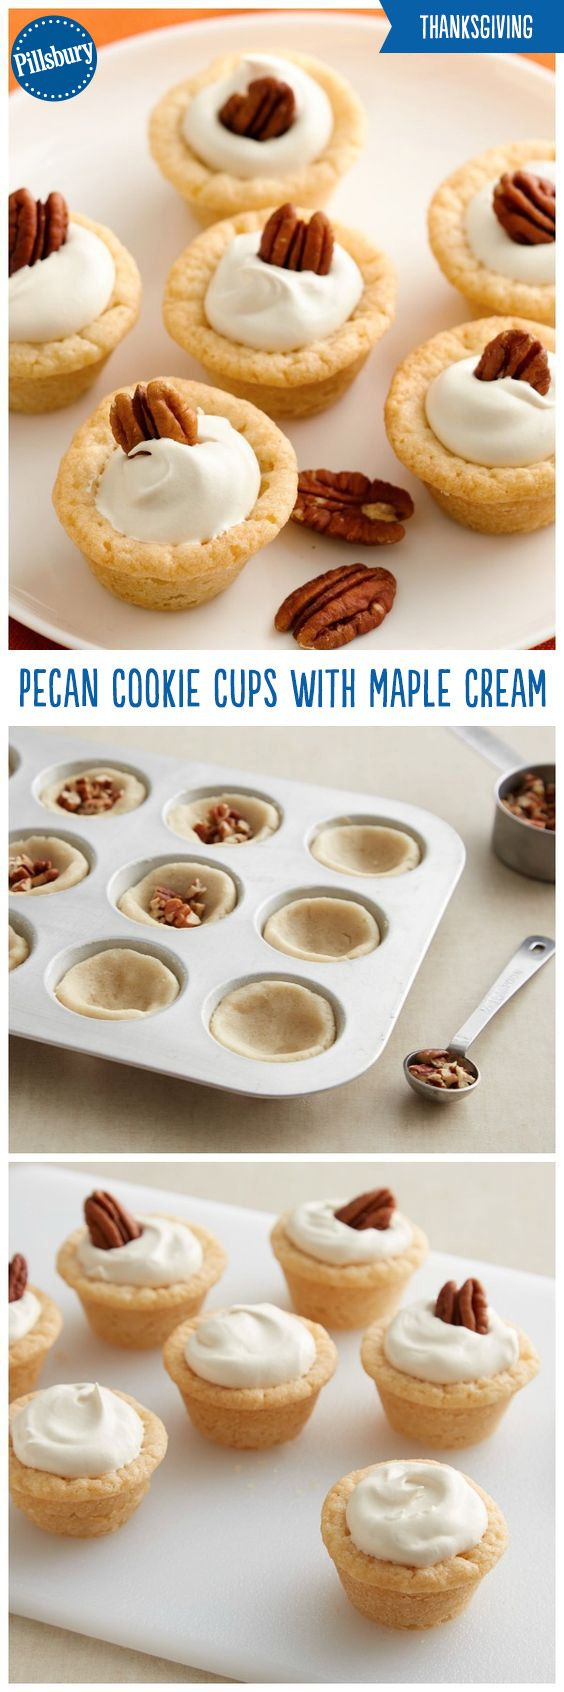 These cookie cups are the perfect shareable treat this holiday season! These Pecan Cookie Cups with Maple Cream are delicious sugar cookies loaded with maple flavor and topped with pecans. They're guaranteed to be a hit at your holiday parties and cookie exchanges.